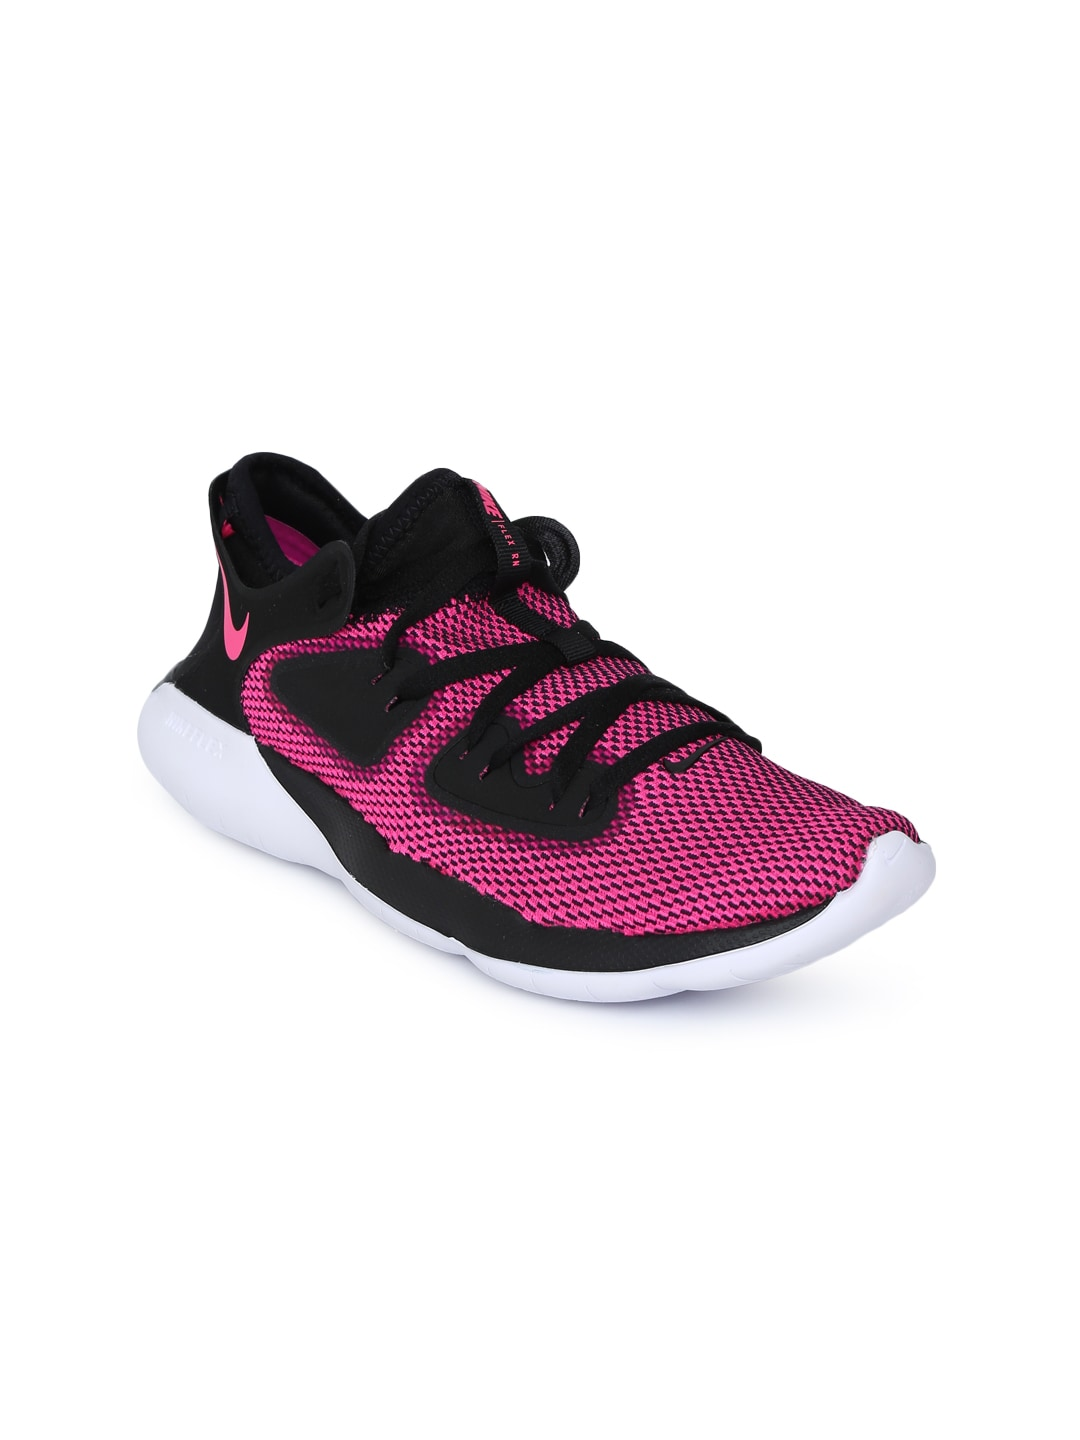 77f12c332a7 Women s Nike Shoes - Buy Nike Shoes for Women Online in India